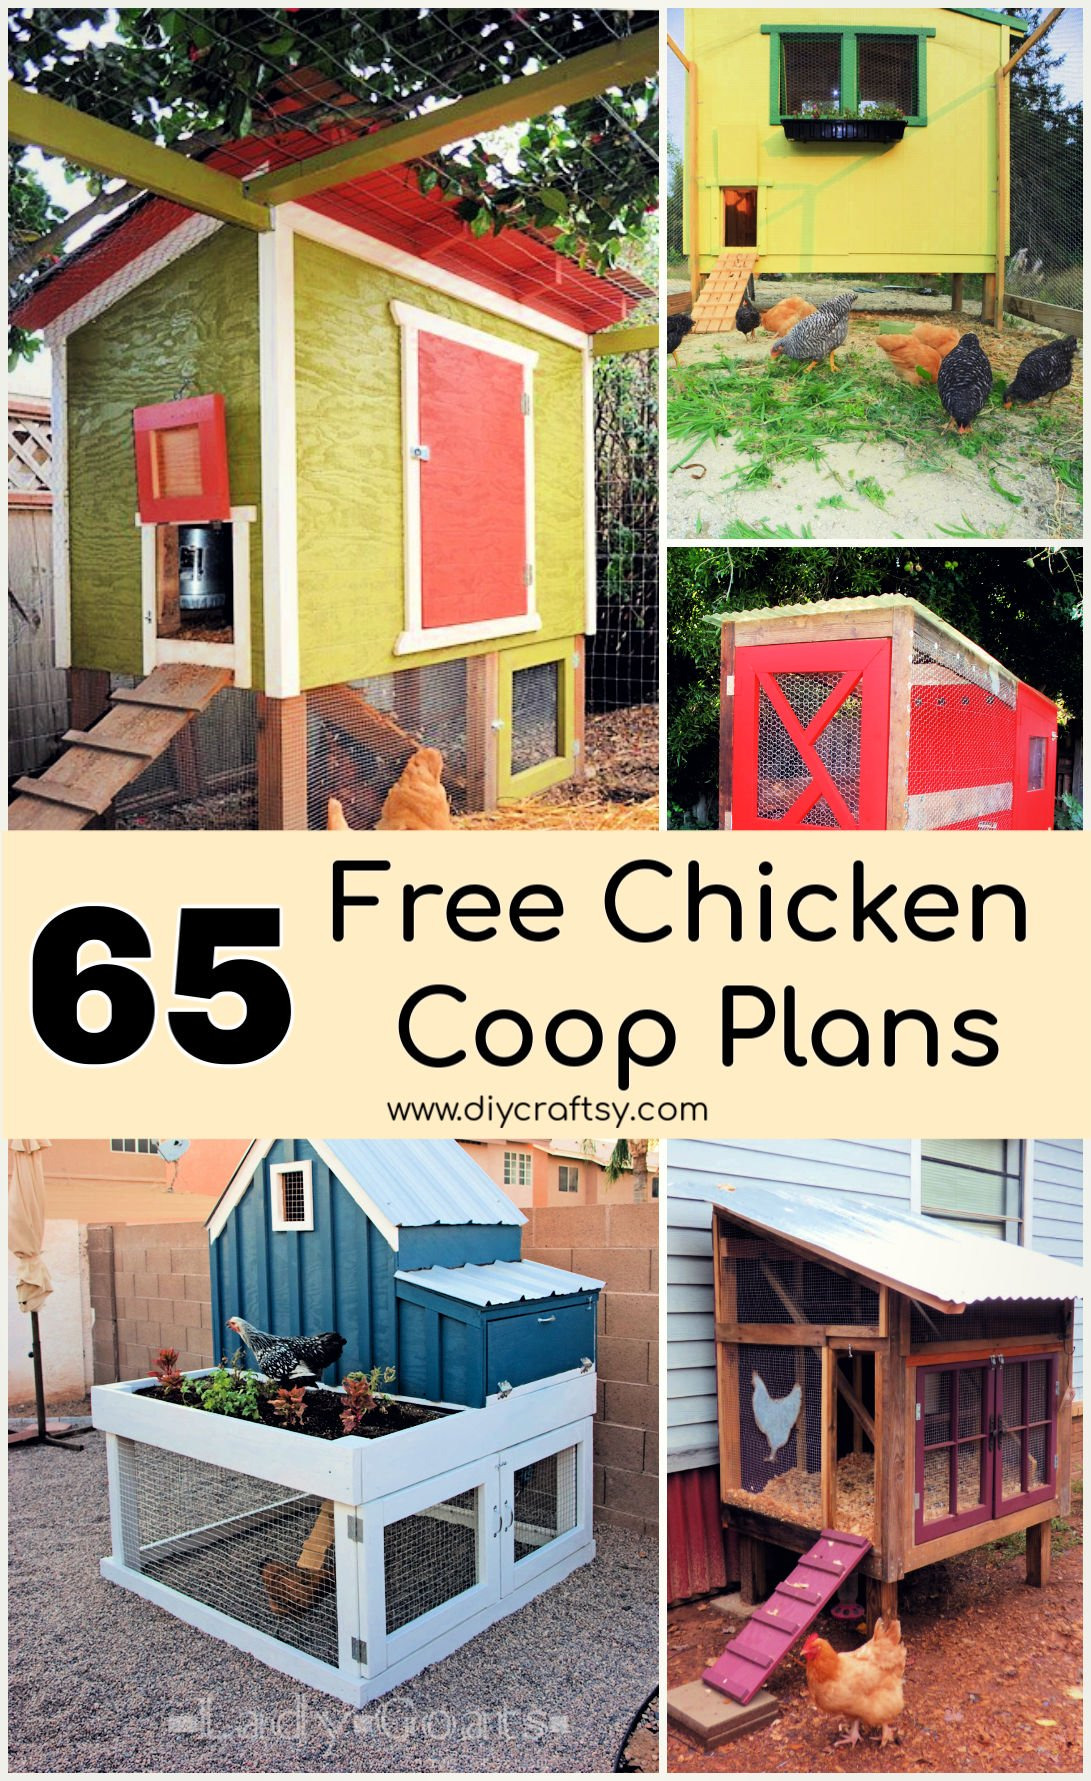 How to Build A Chicken House Free Plans Awesome 65 Free Chicken Coop Plans You Can Build at Home ⋆ Diy Crafts